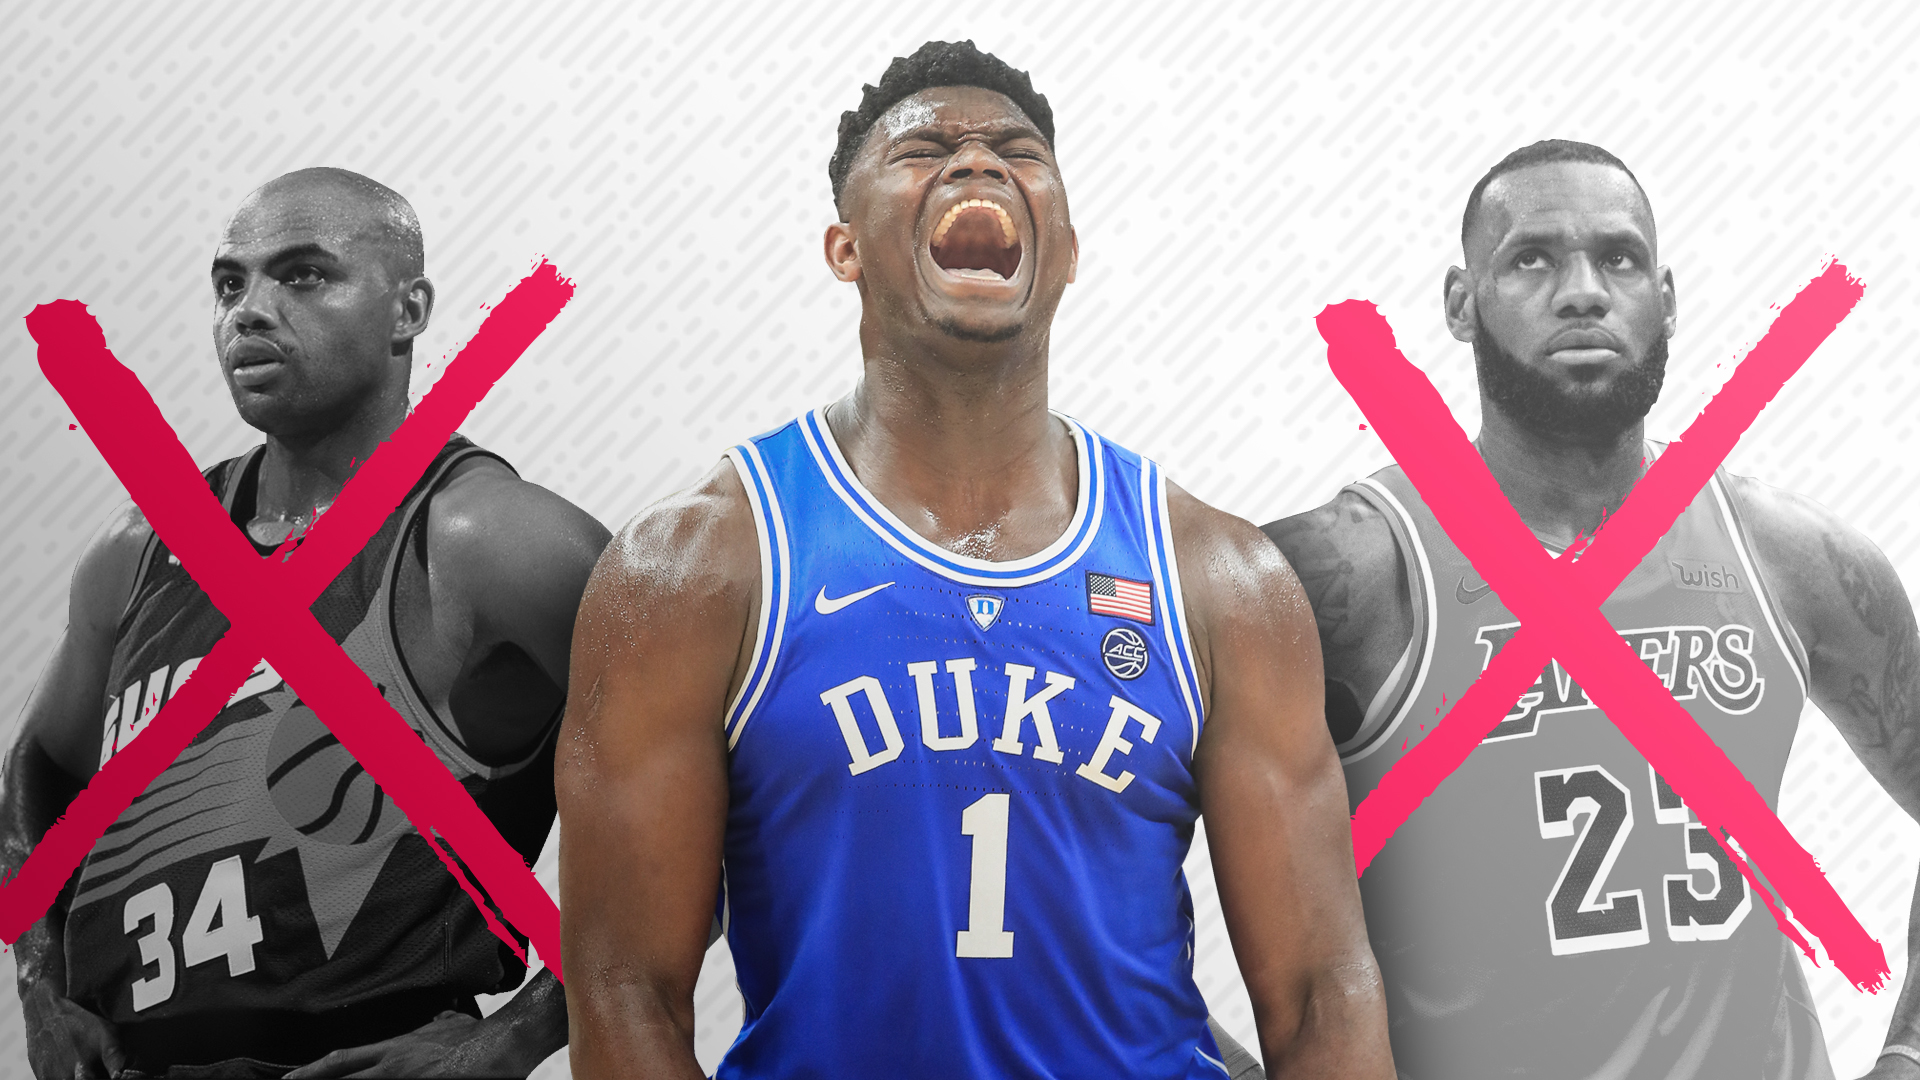 official photos 4b72a df89d Quit the comparisons: Duke's Zion Williamson is something ...